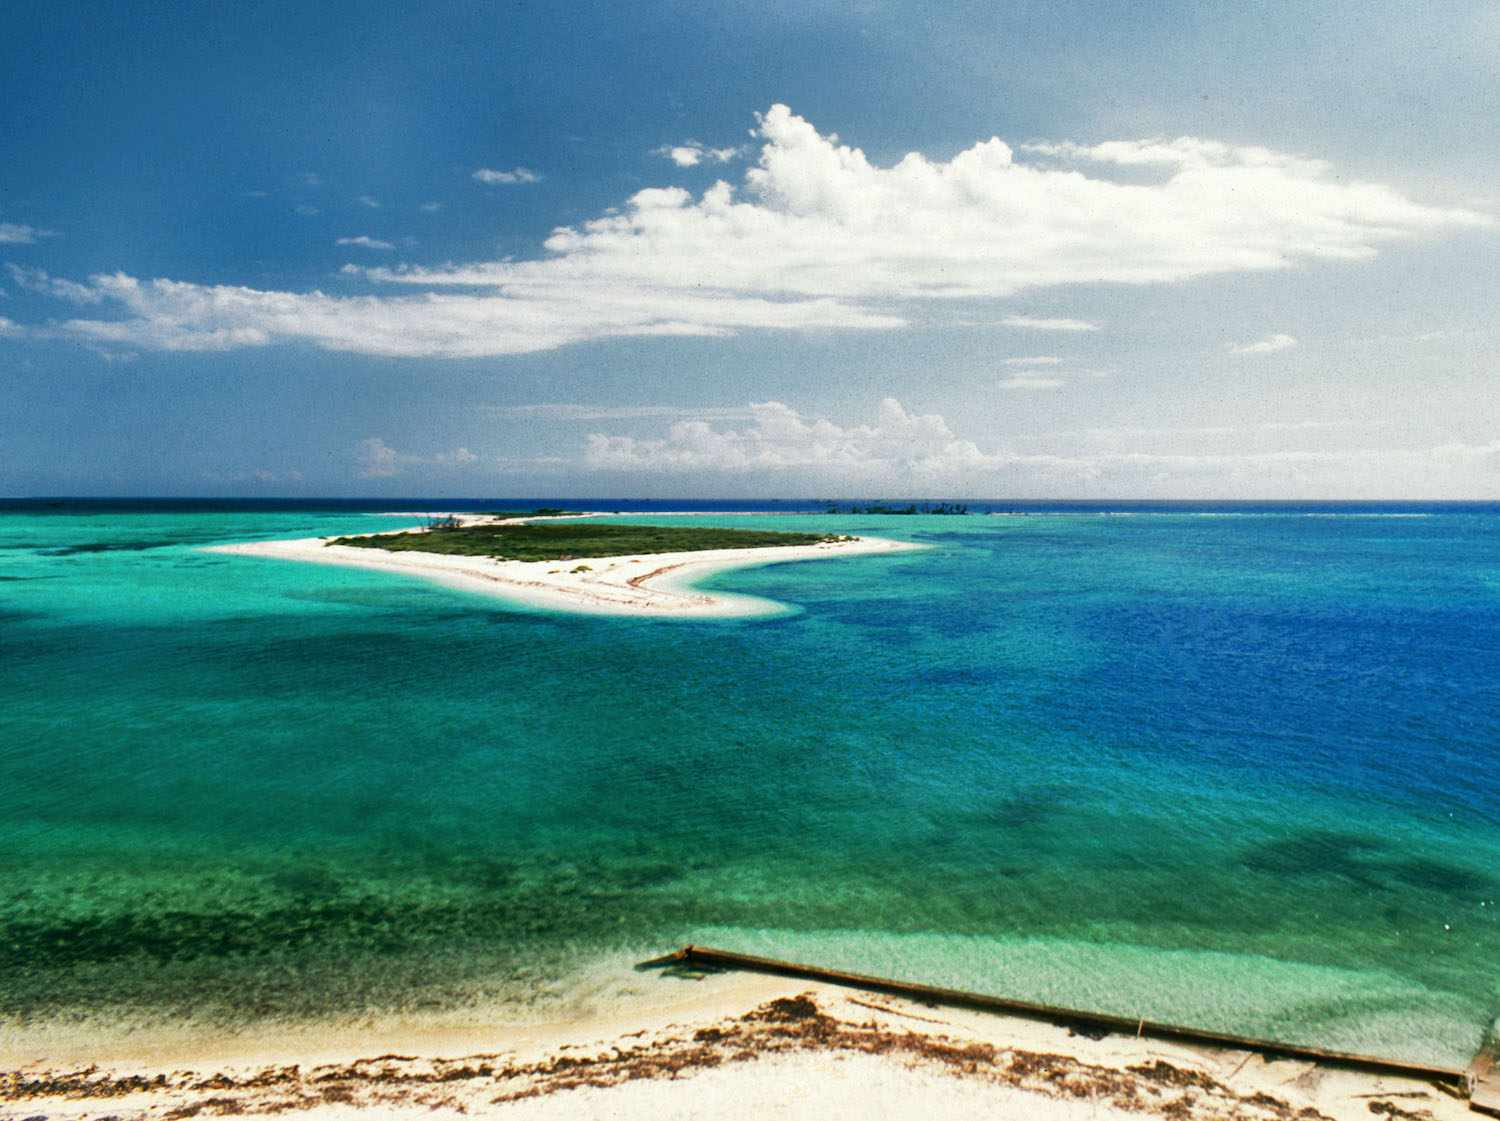 A greenish-blue waters of Dry Tortugas in Key West Florida